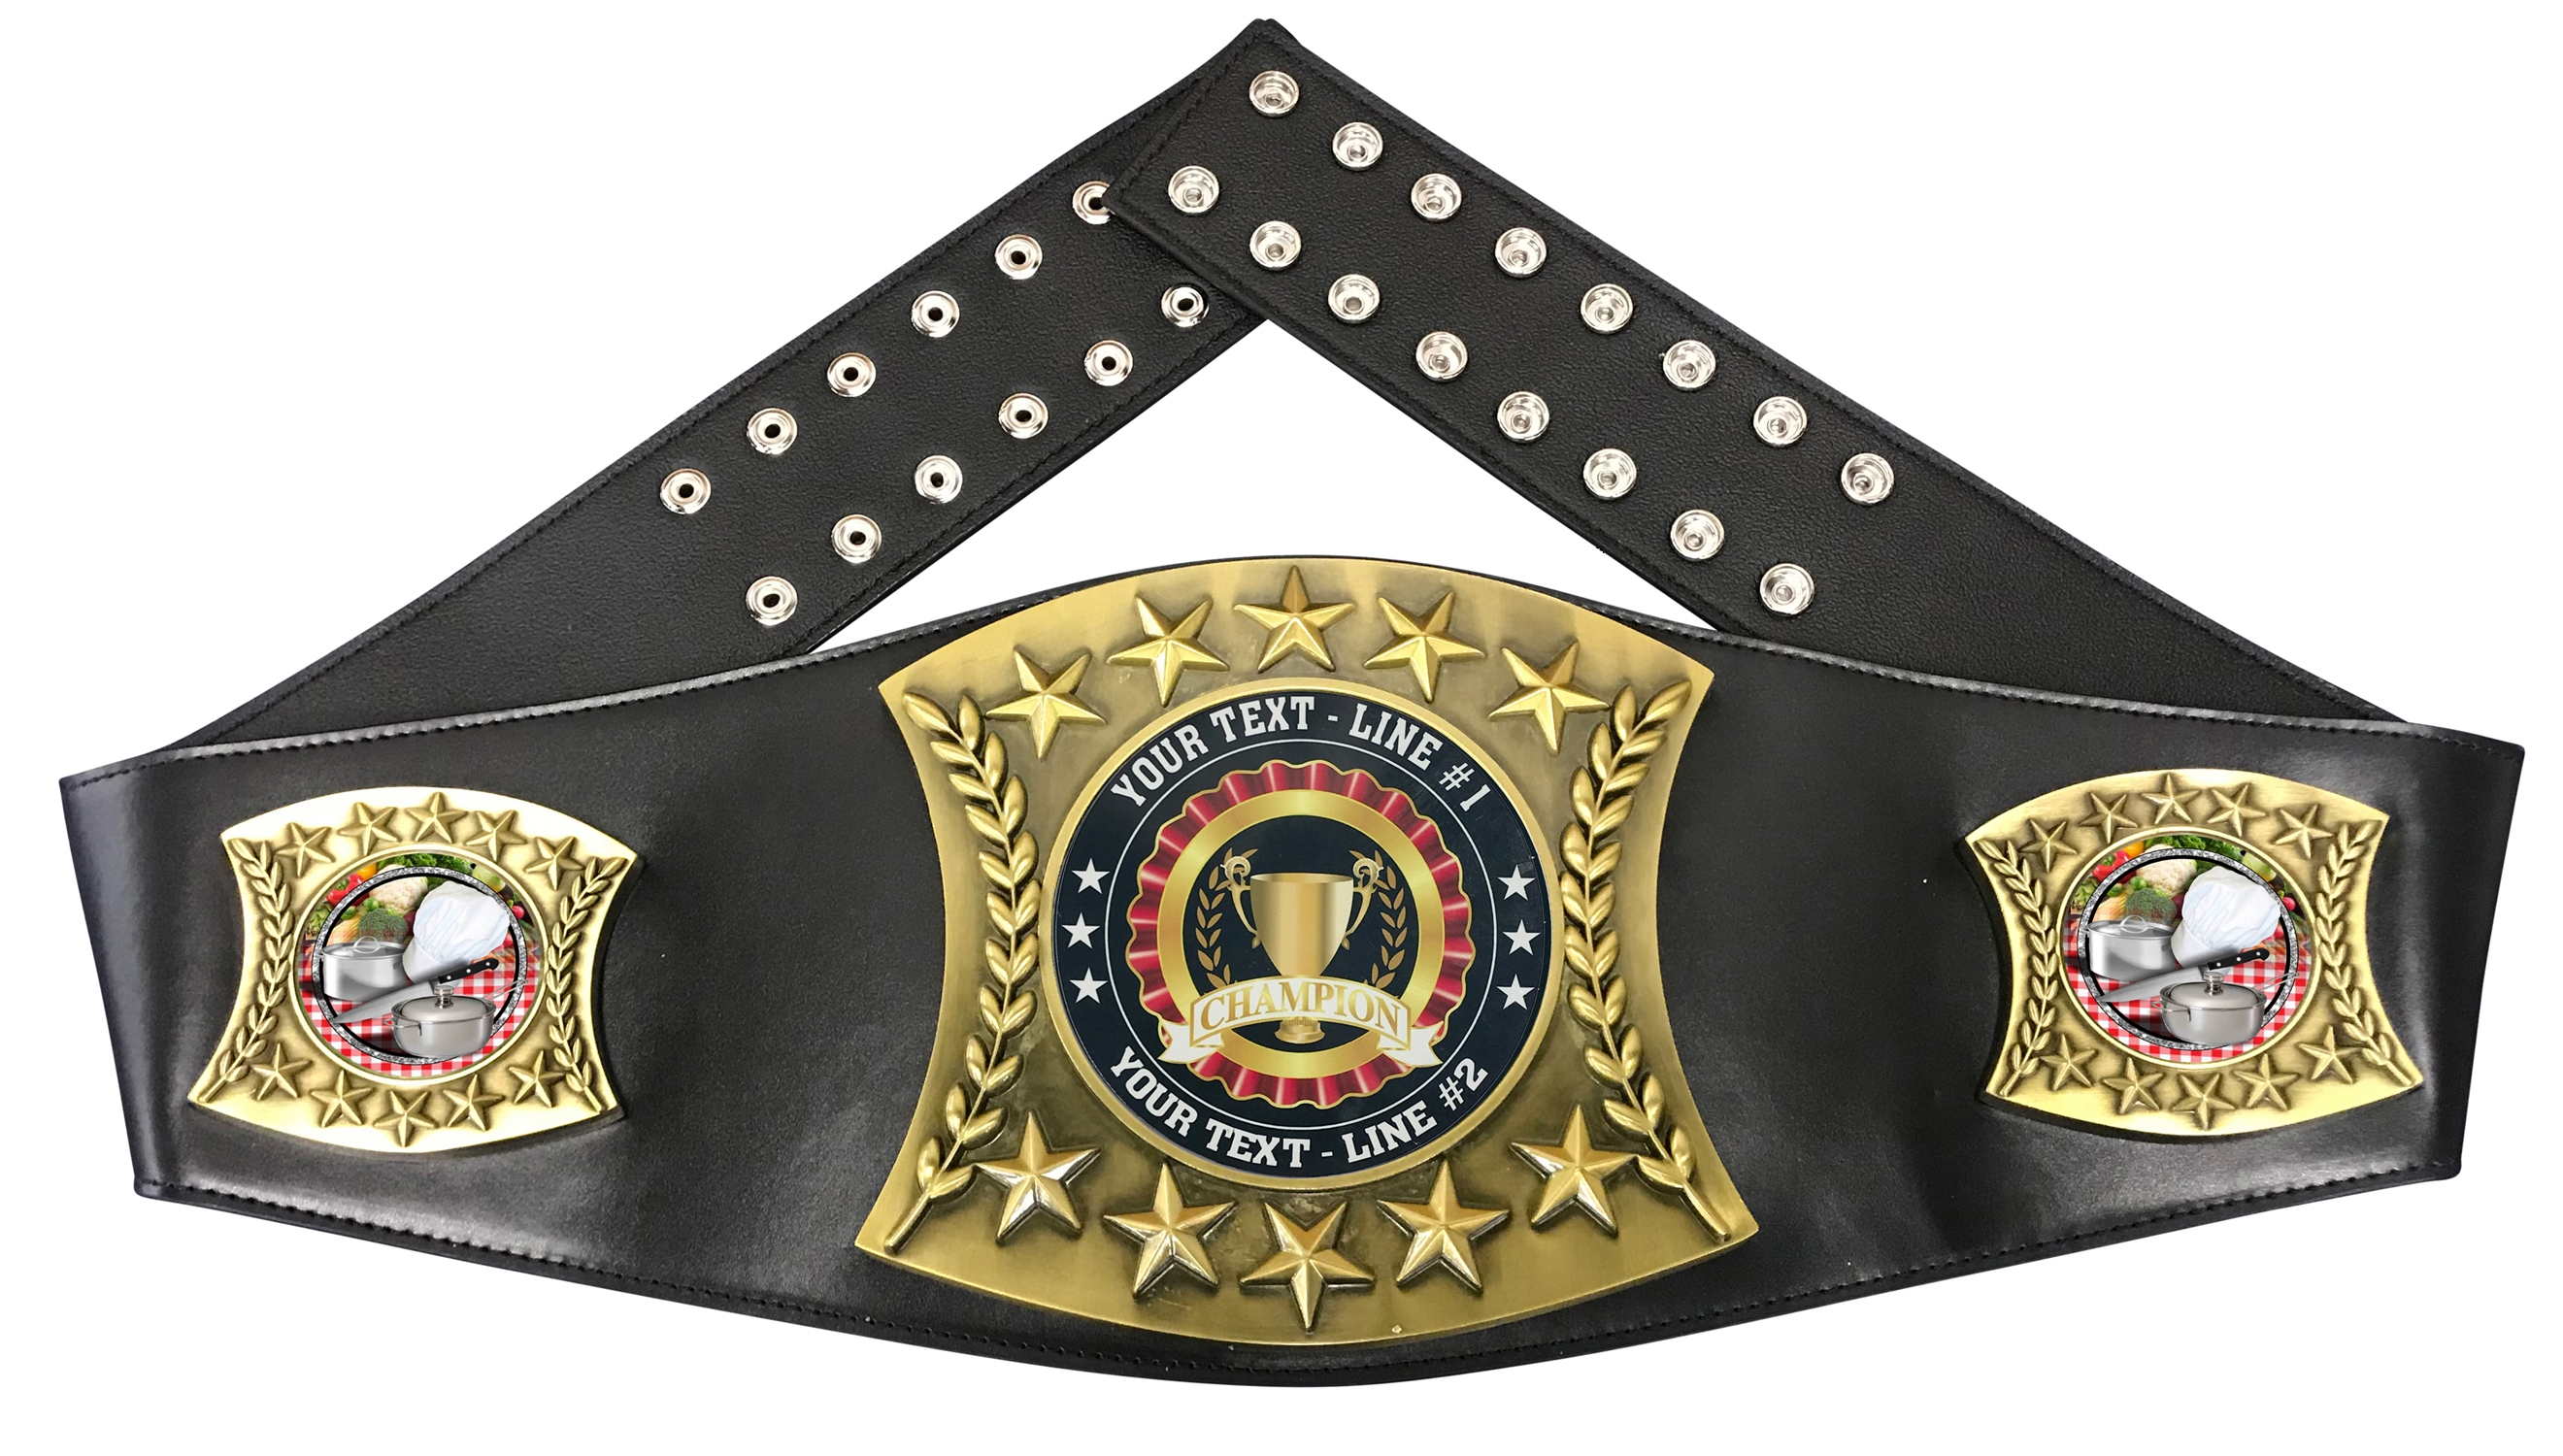 Chef Cooking Personalized Championship Belt